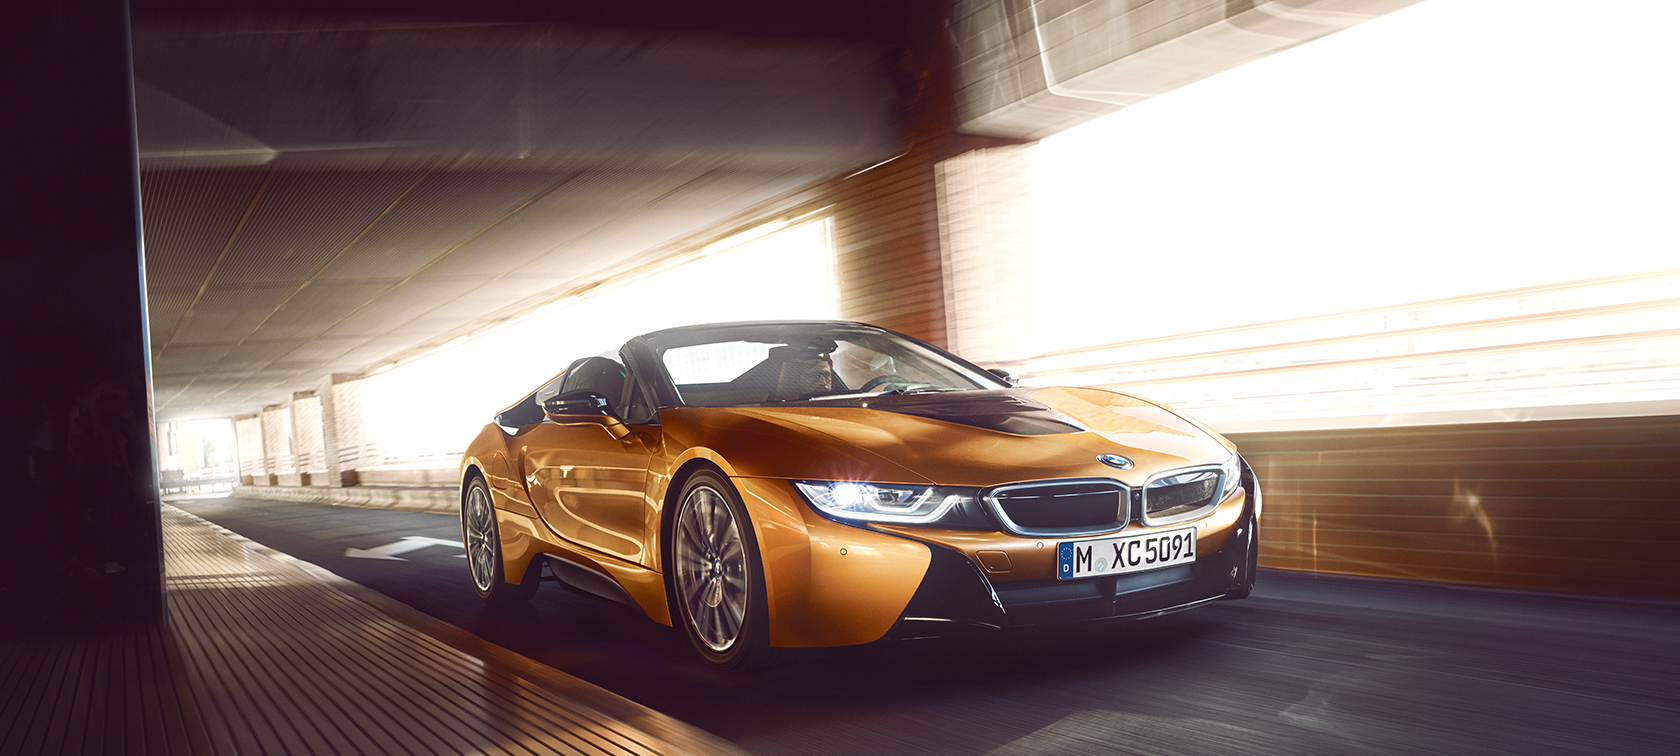 Bmw I8 Interieur Bmw I8 Roadster La Nouvelle Version De La Plug In Hybrid